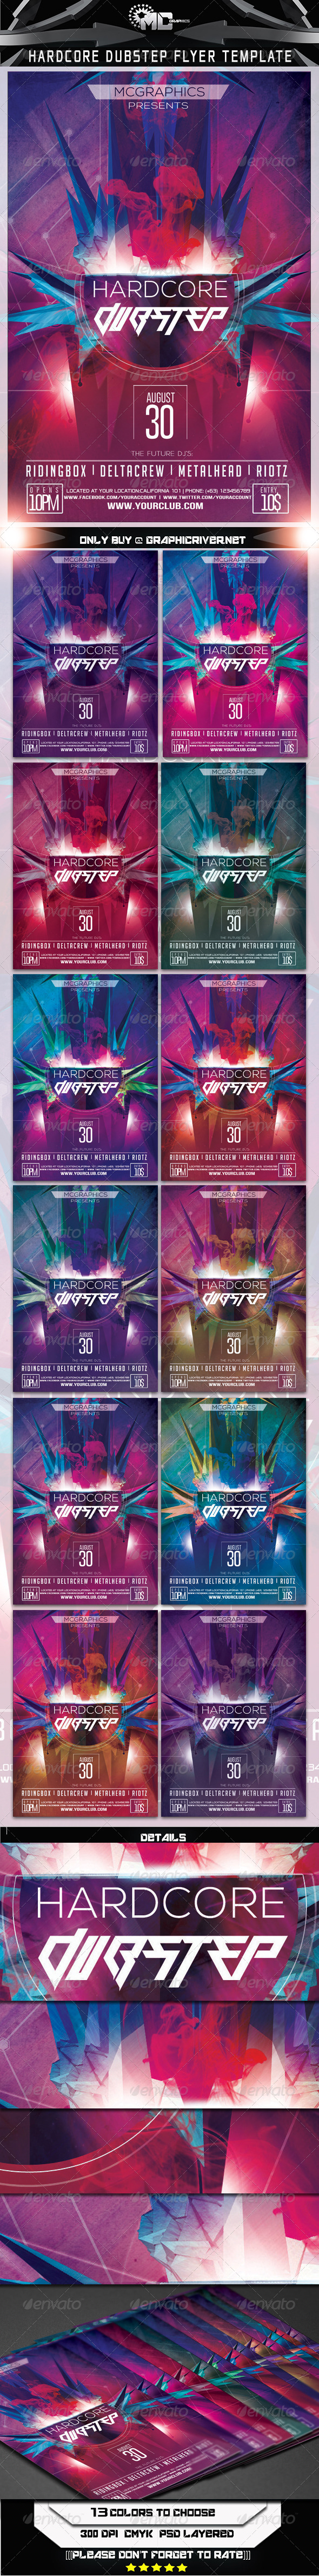 Hardcore Dubstep Flyer Template - Events Flyers